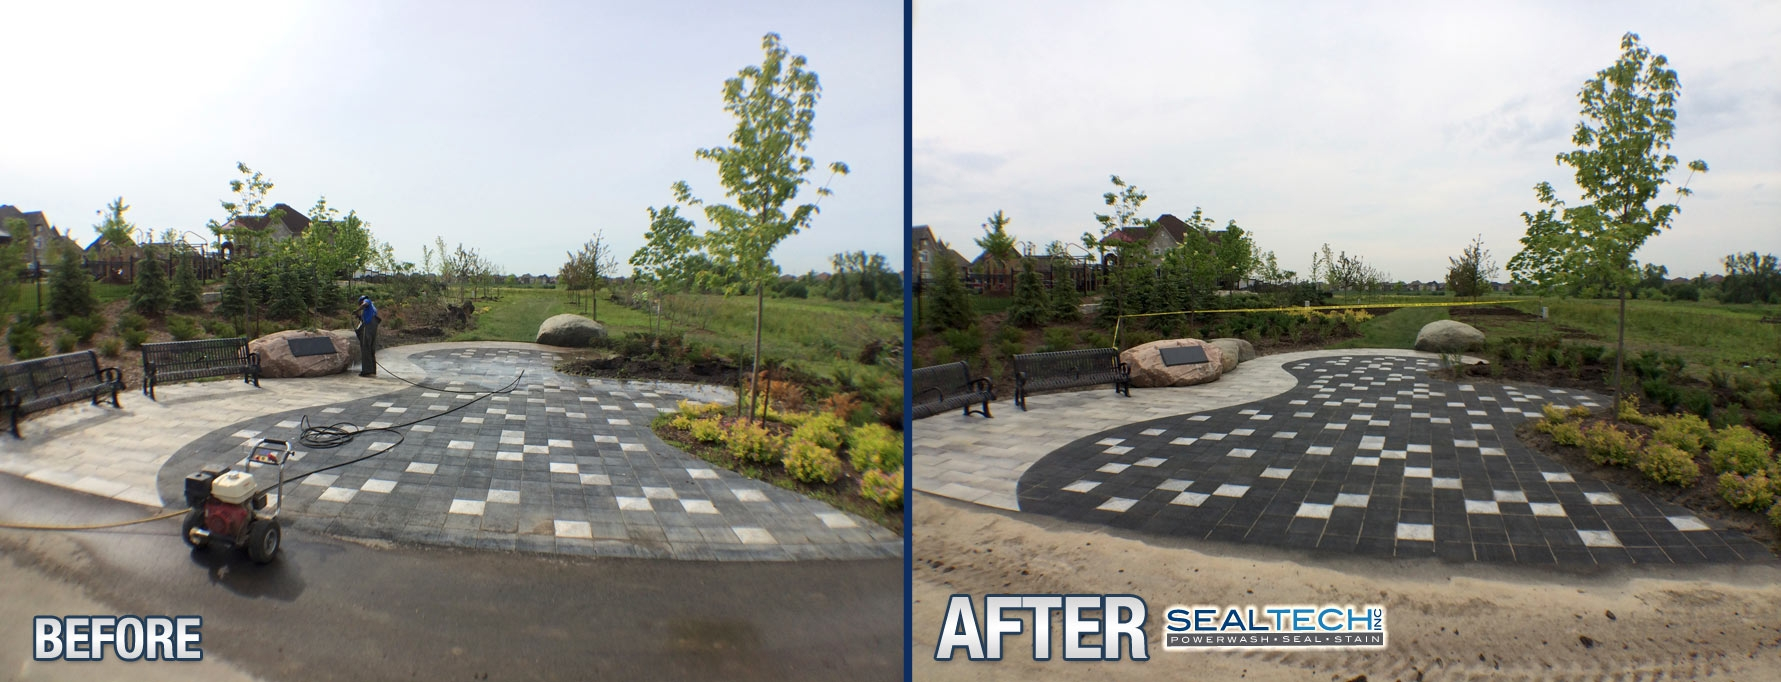 Interlocking-stone-restoraton-before-after